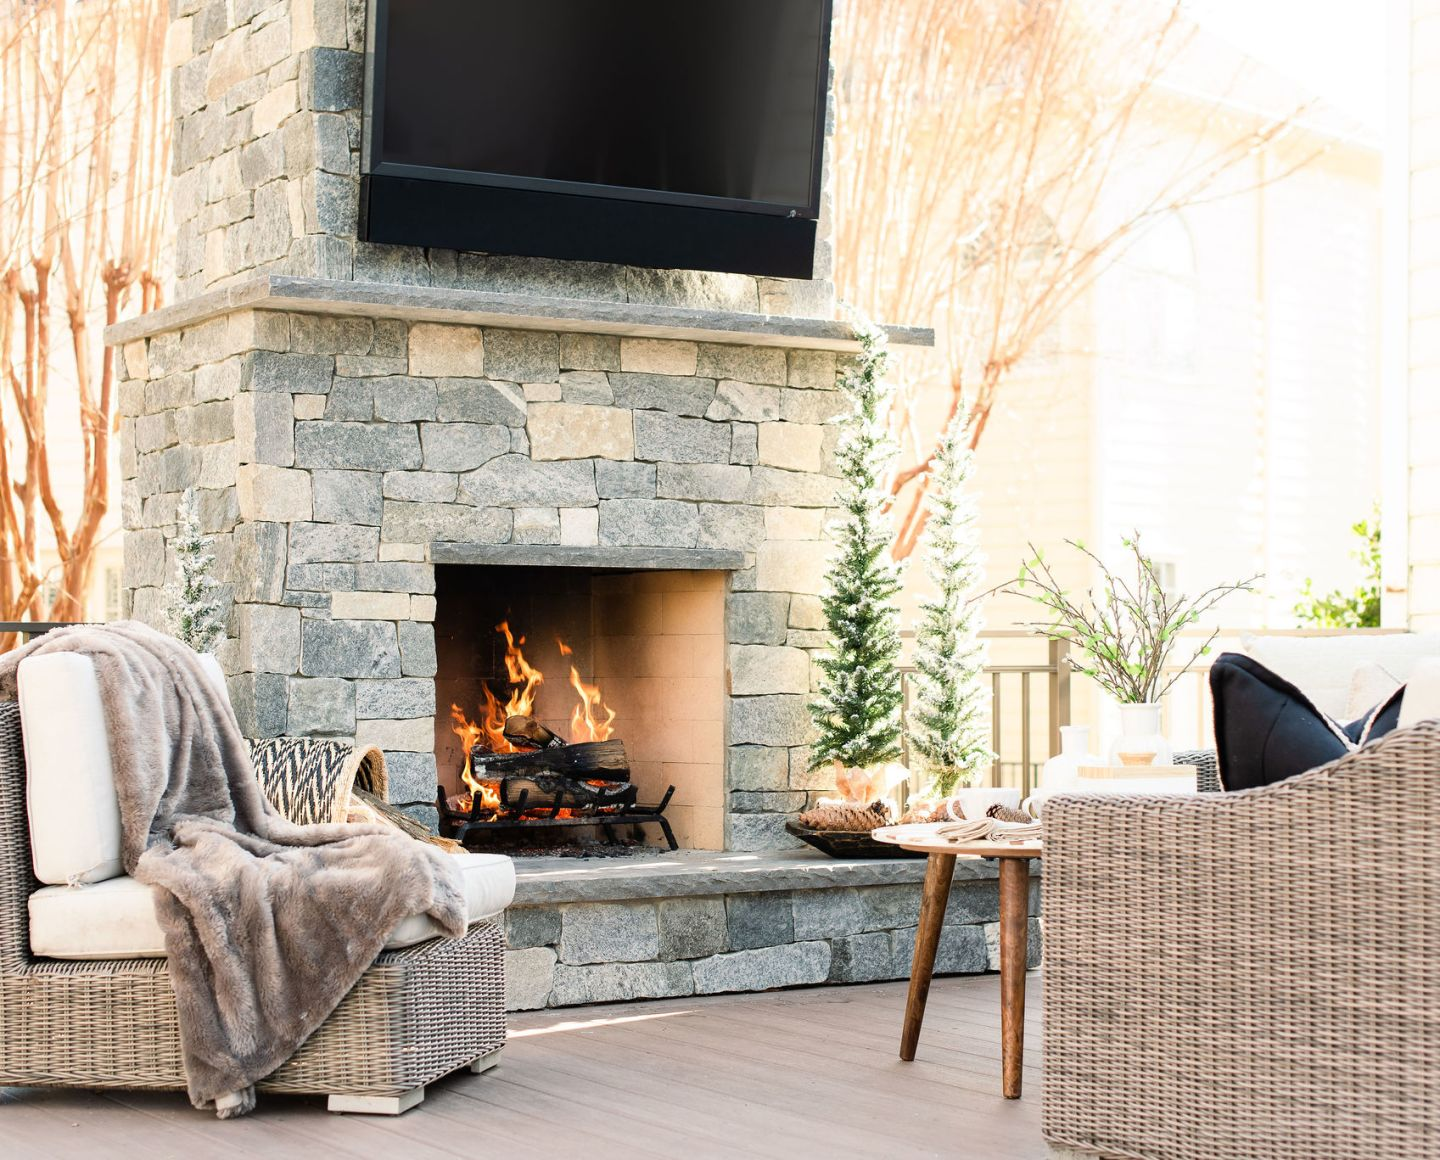 Holiday backyard fireplace and entertainment center